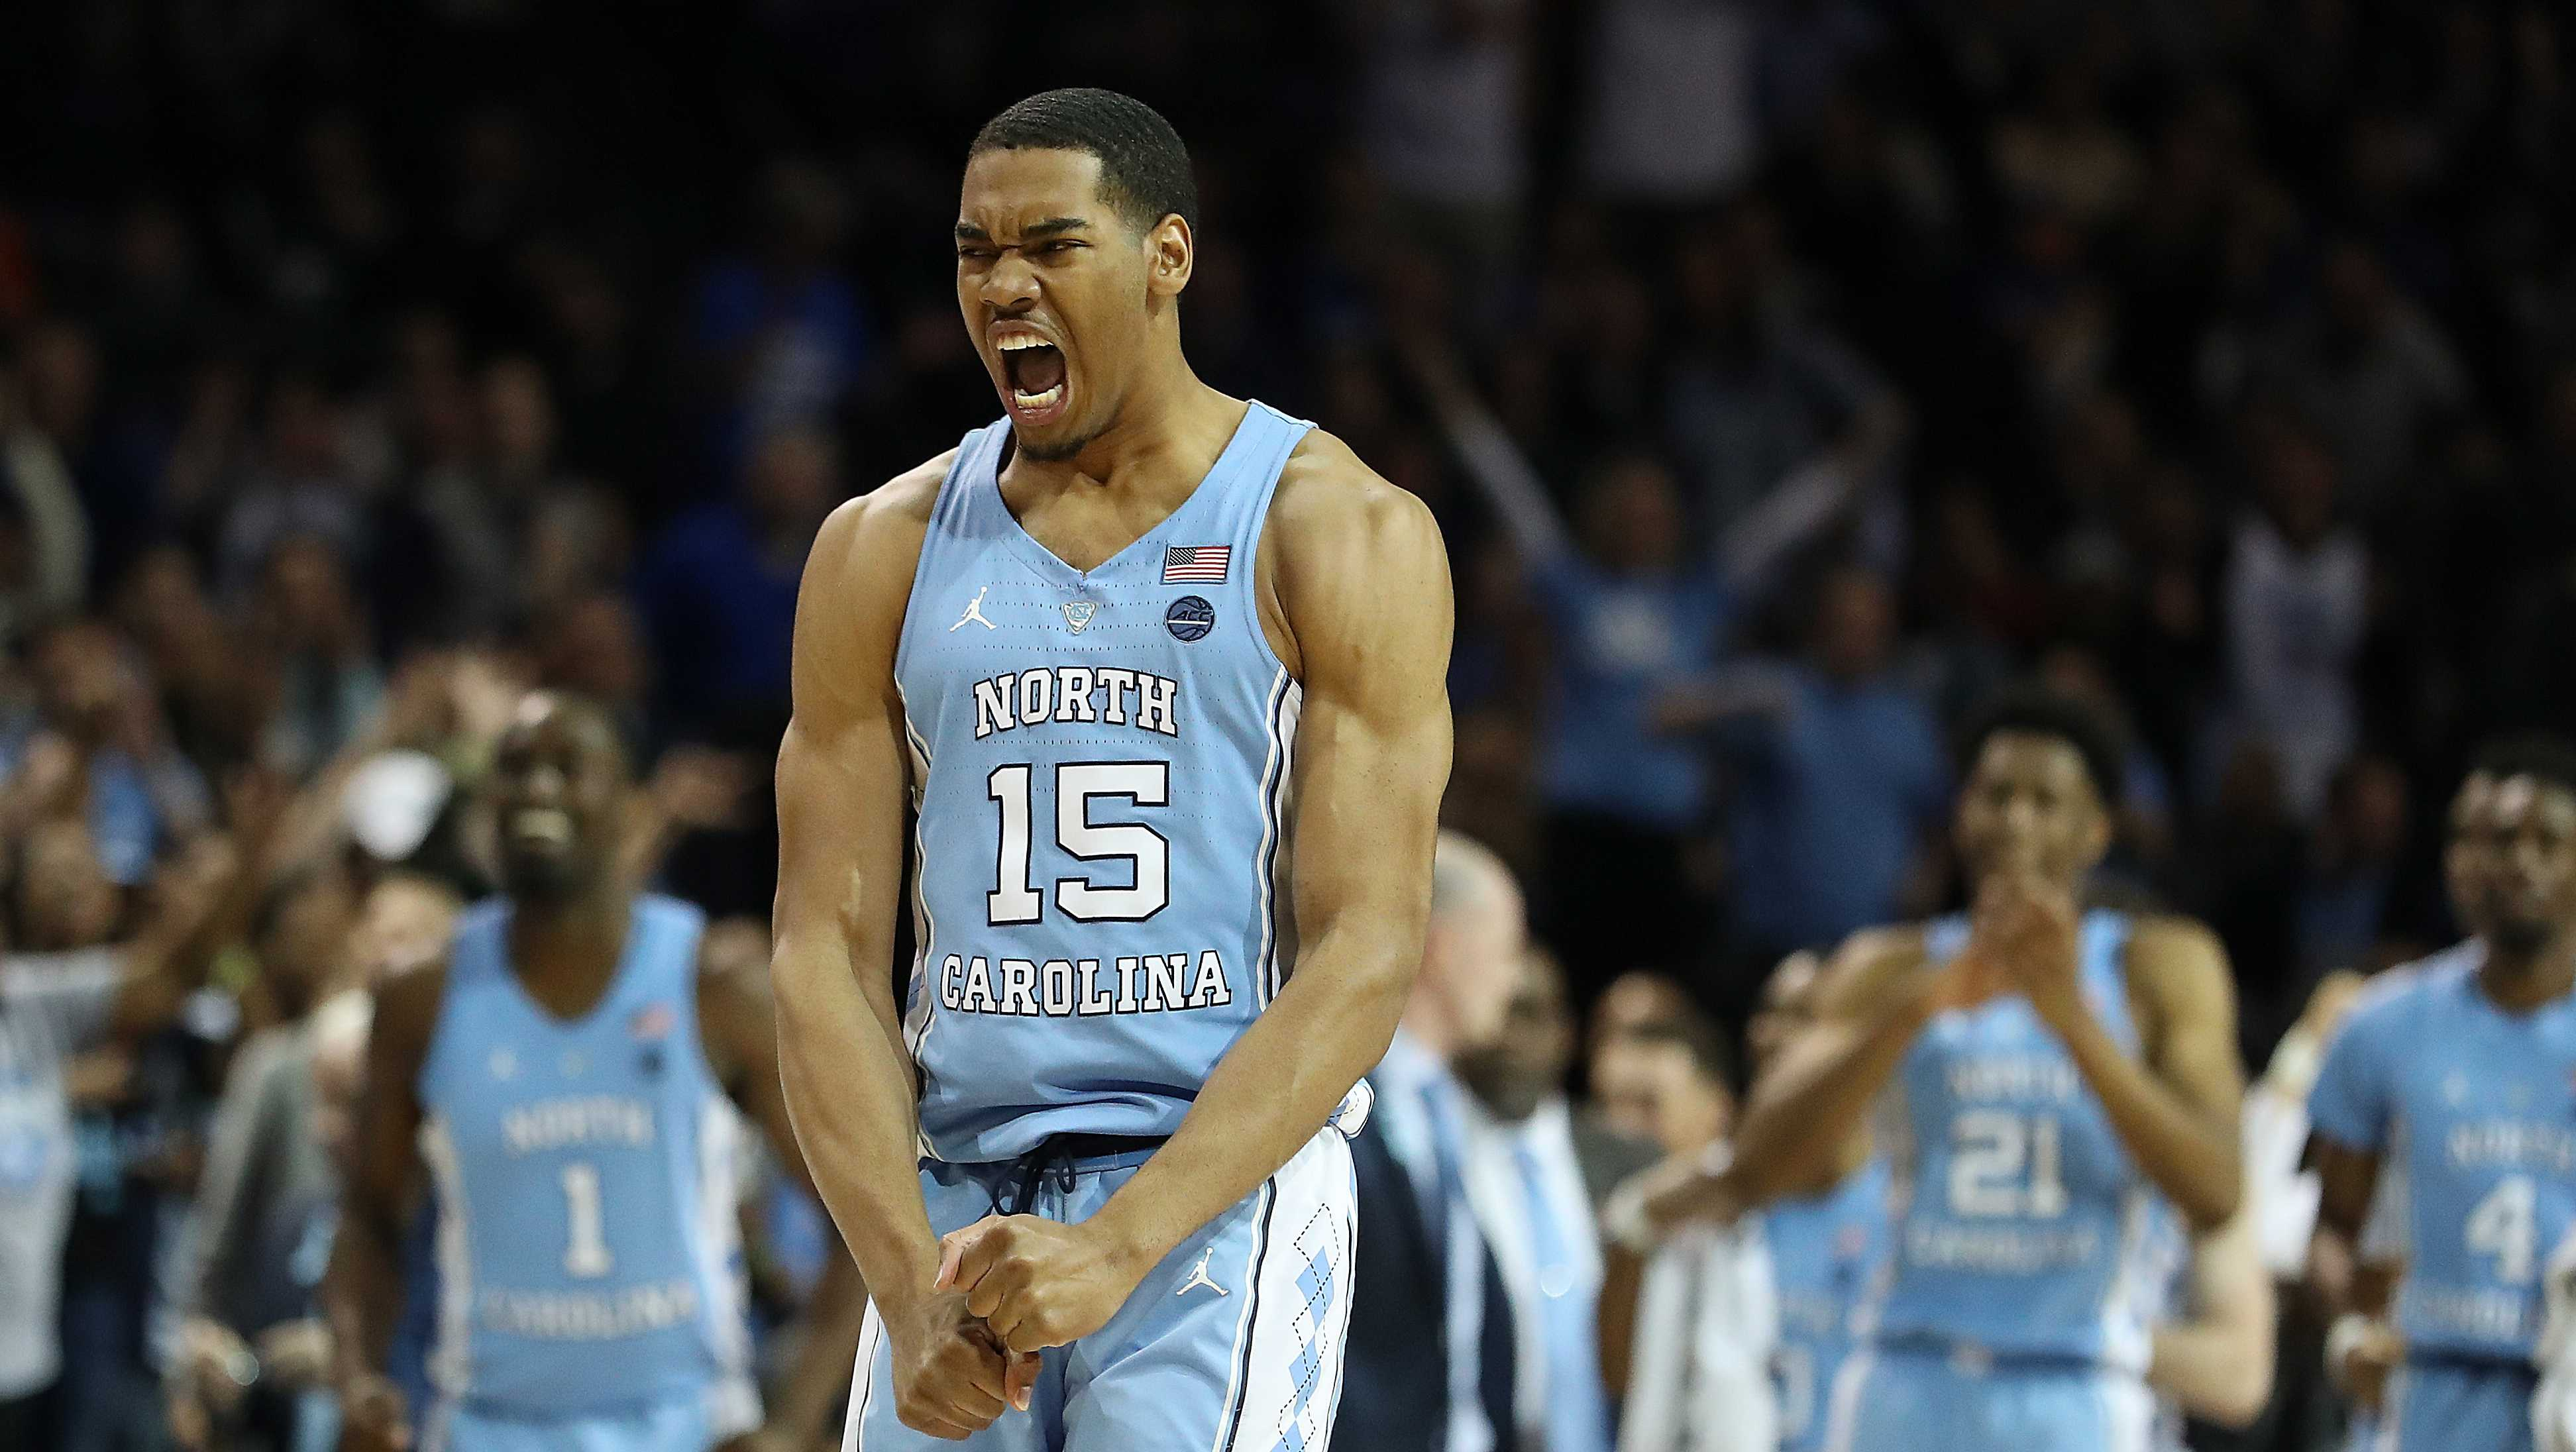 Garrison Brooks #15 of the North Carolina Tar Heels celebrates against Duke Blue Devils during the semifinals of the ACC Men's Basketball Tournament at the Barclays Center on March 9, 2018 in New York City.